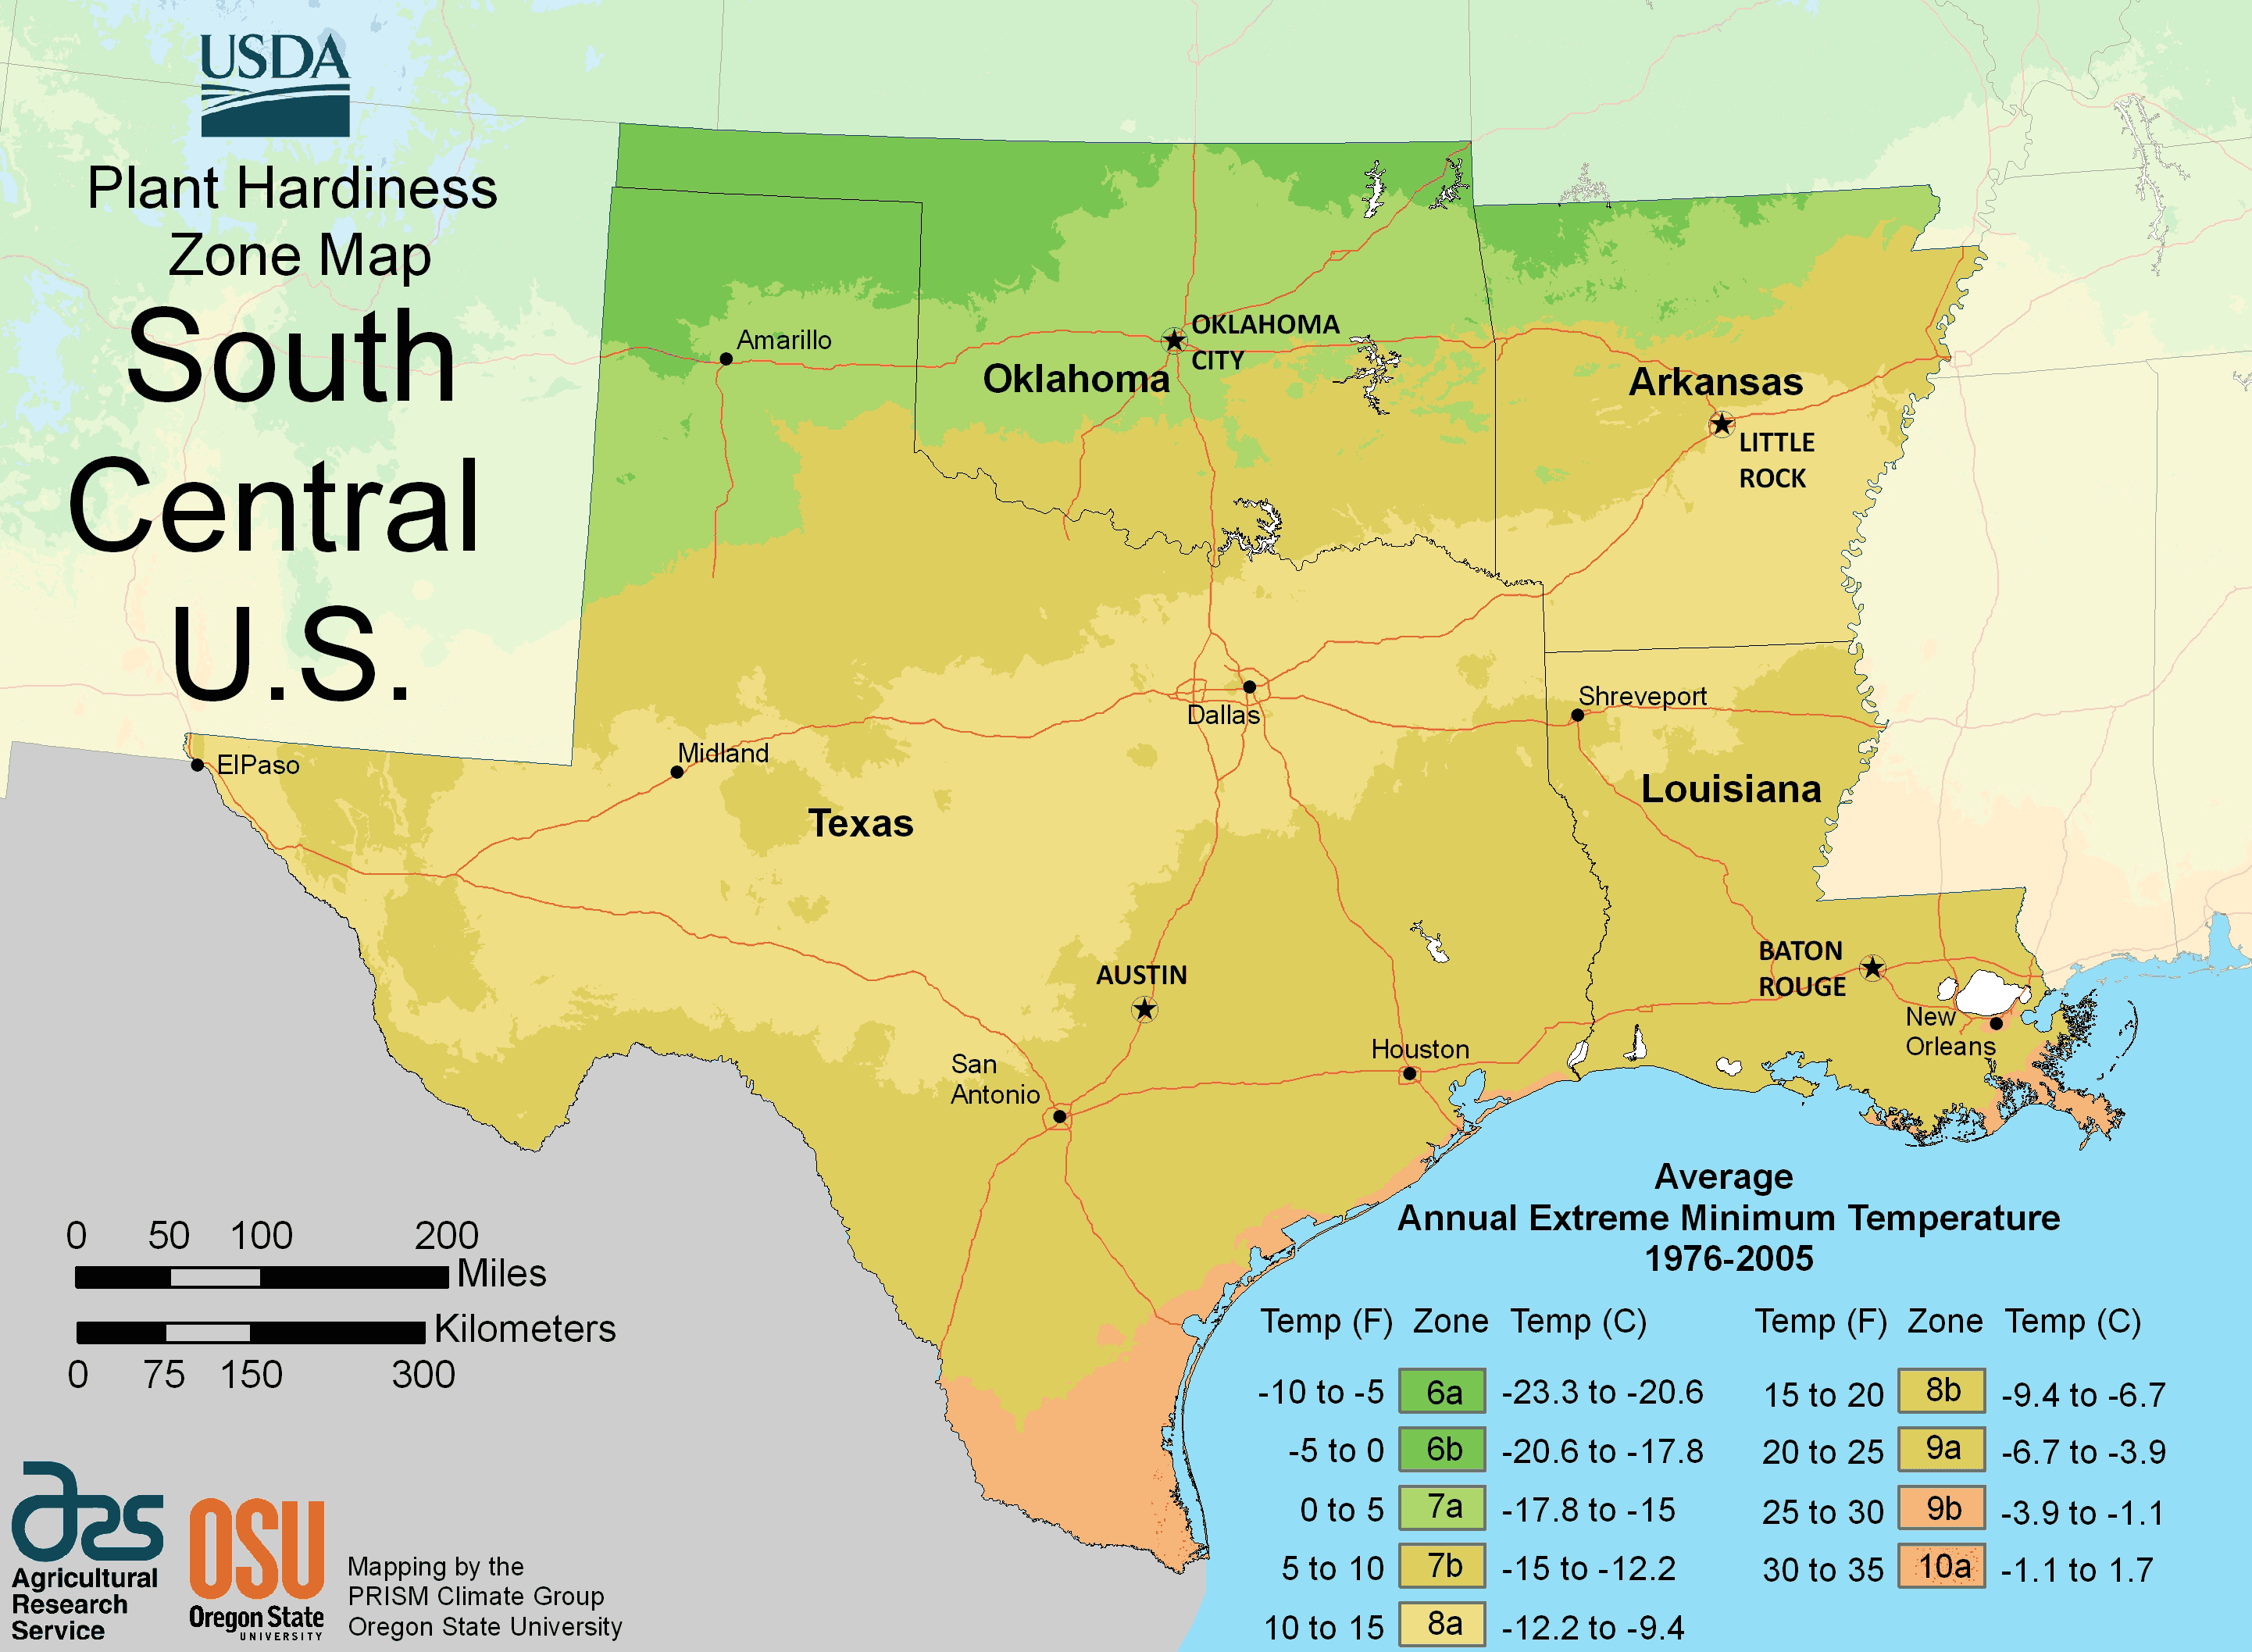 Click On The South Central Us Plant Hardiness Zone Map